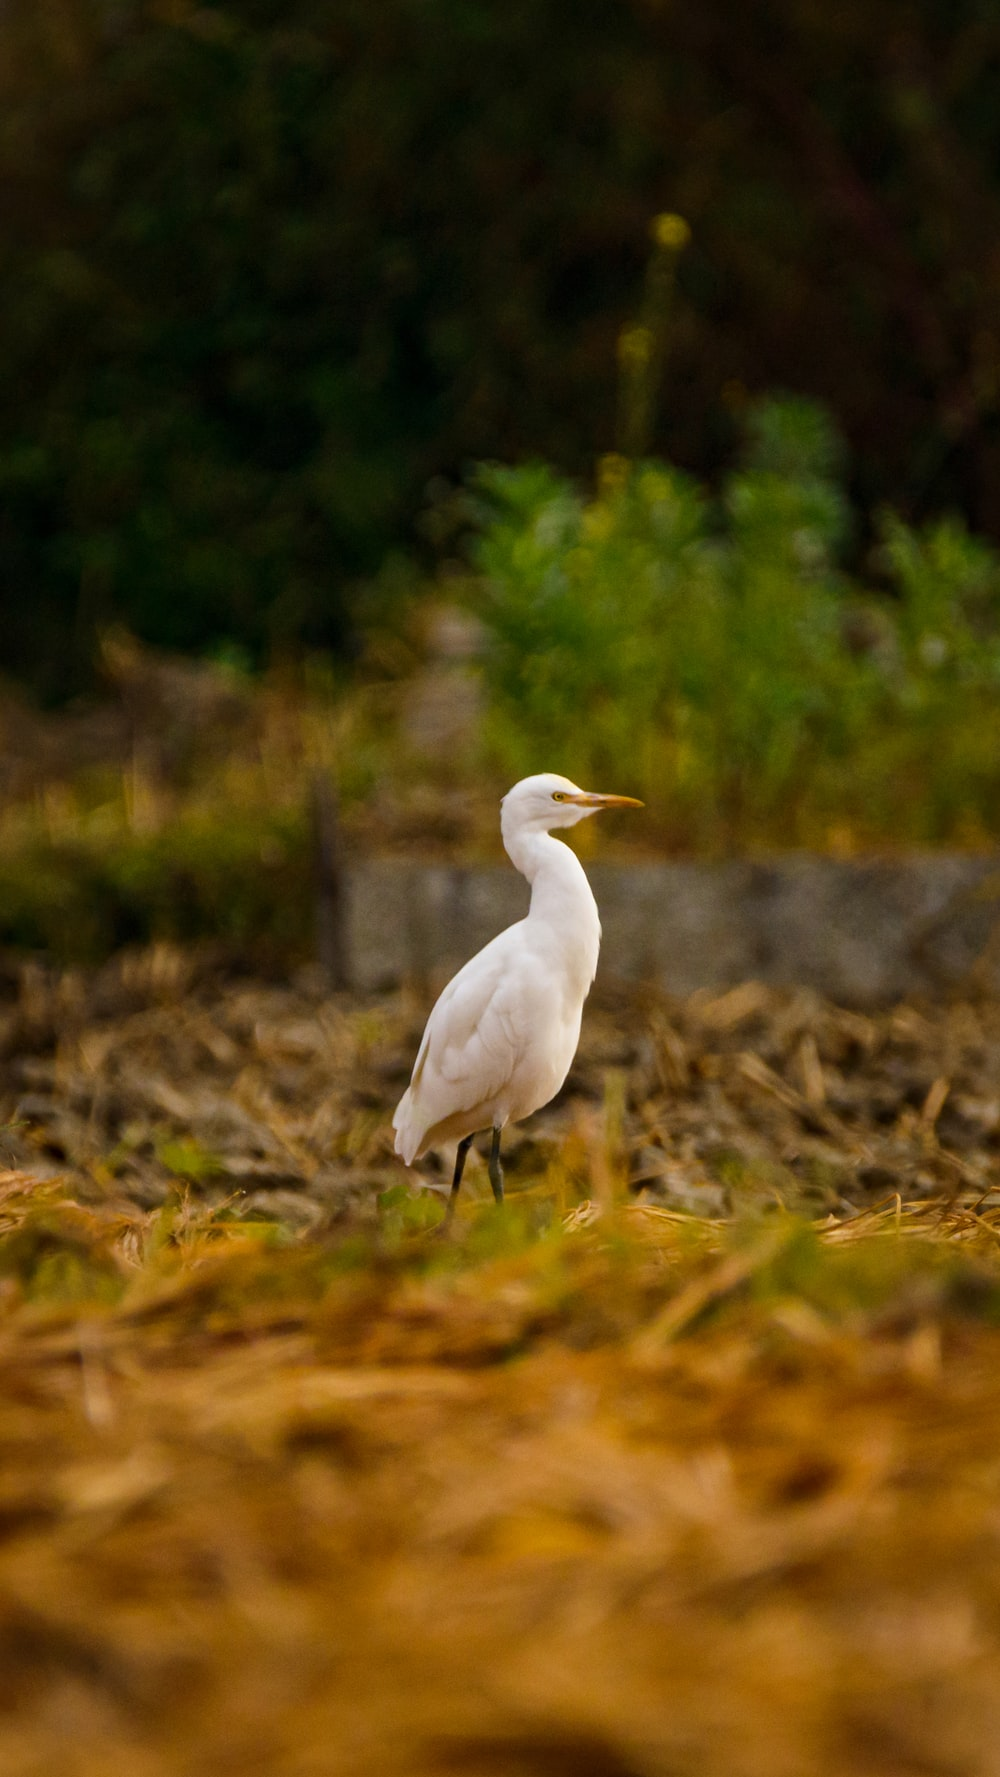 white bird on brown grass during daytime